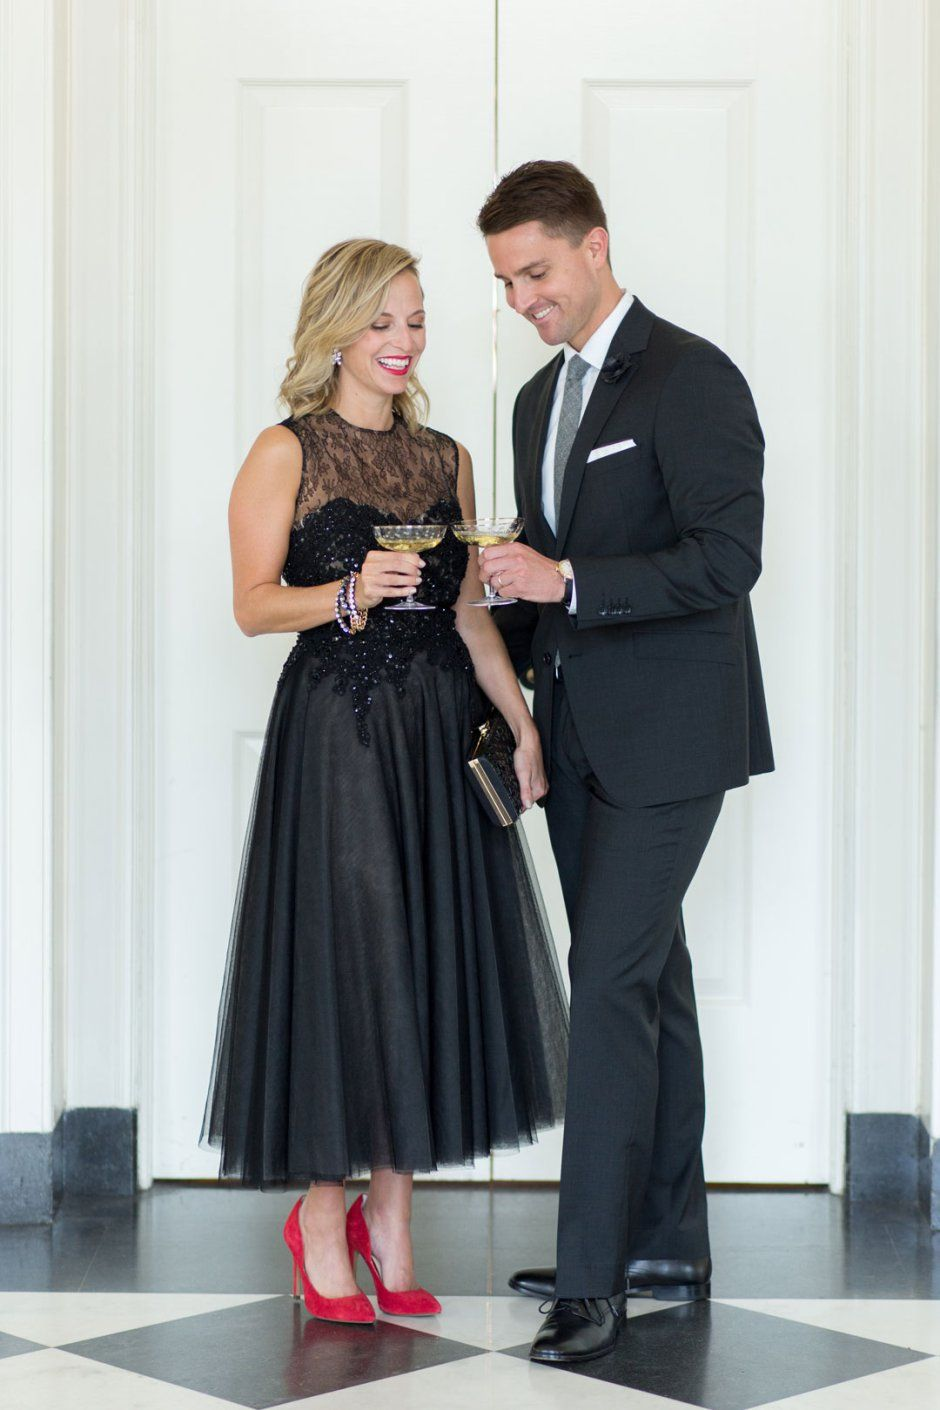 Rent The Runway Dress For A Black Tie Optional Wedding Mens Suit For A Wedding Photo By Jennifer Kathryn Photography